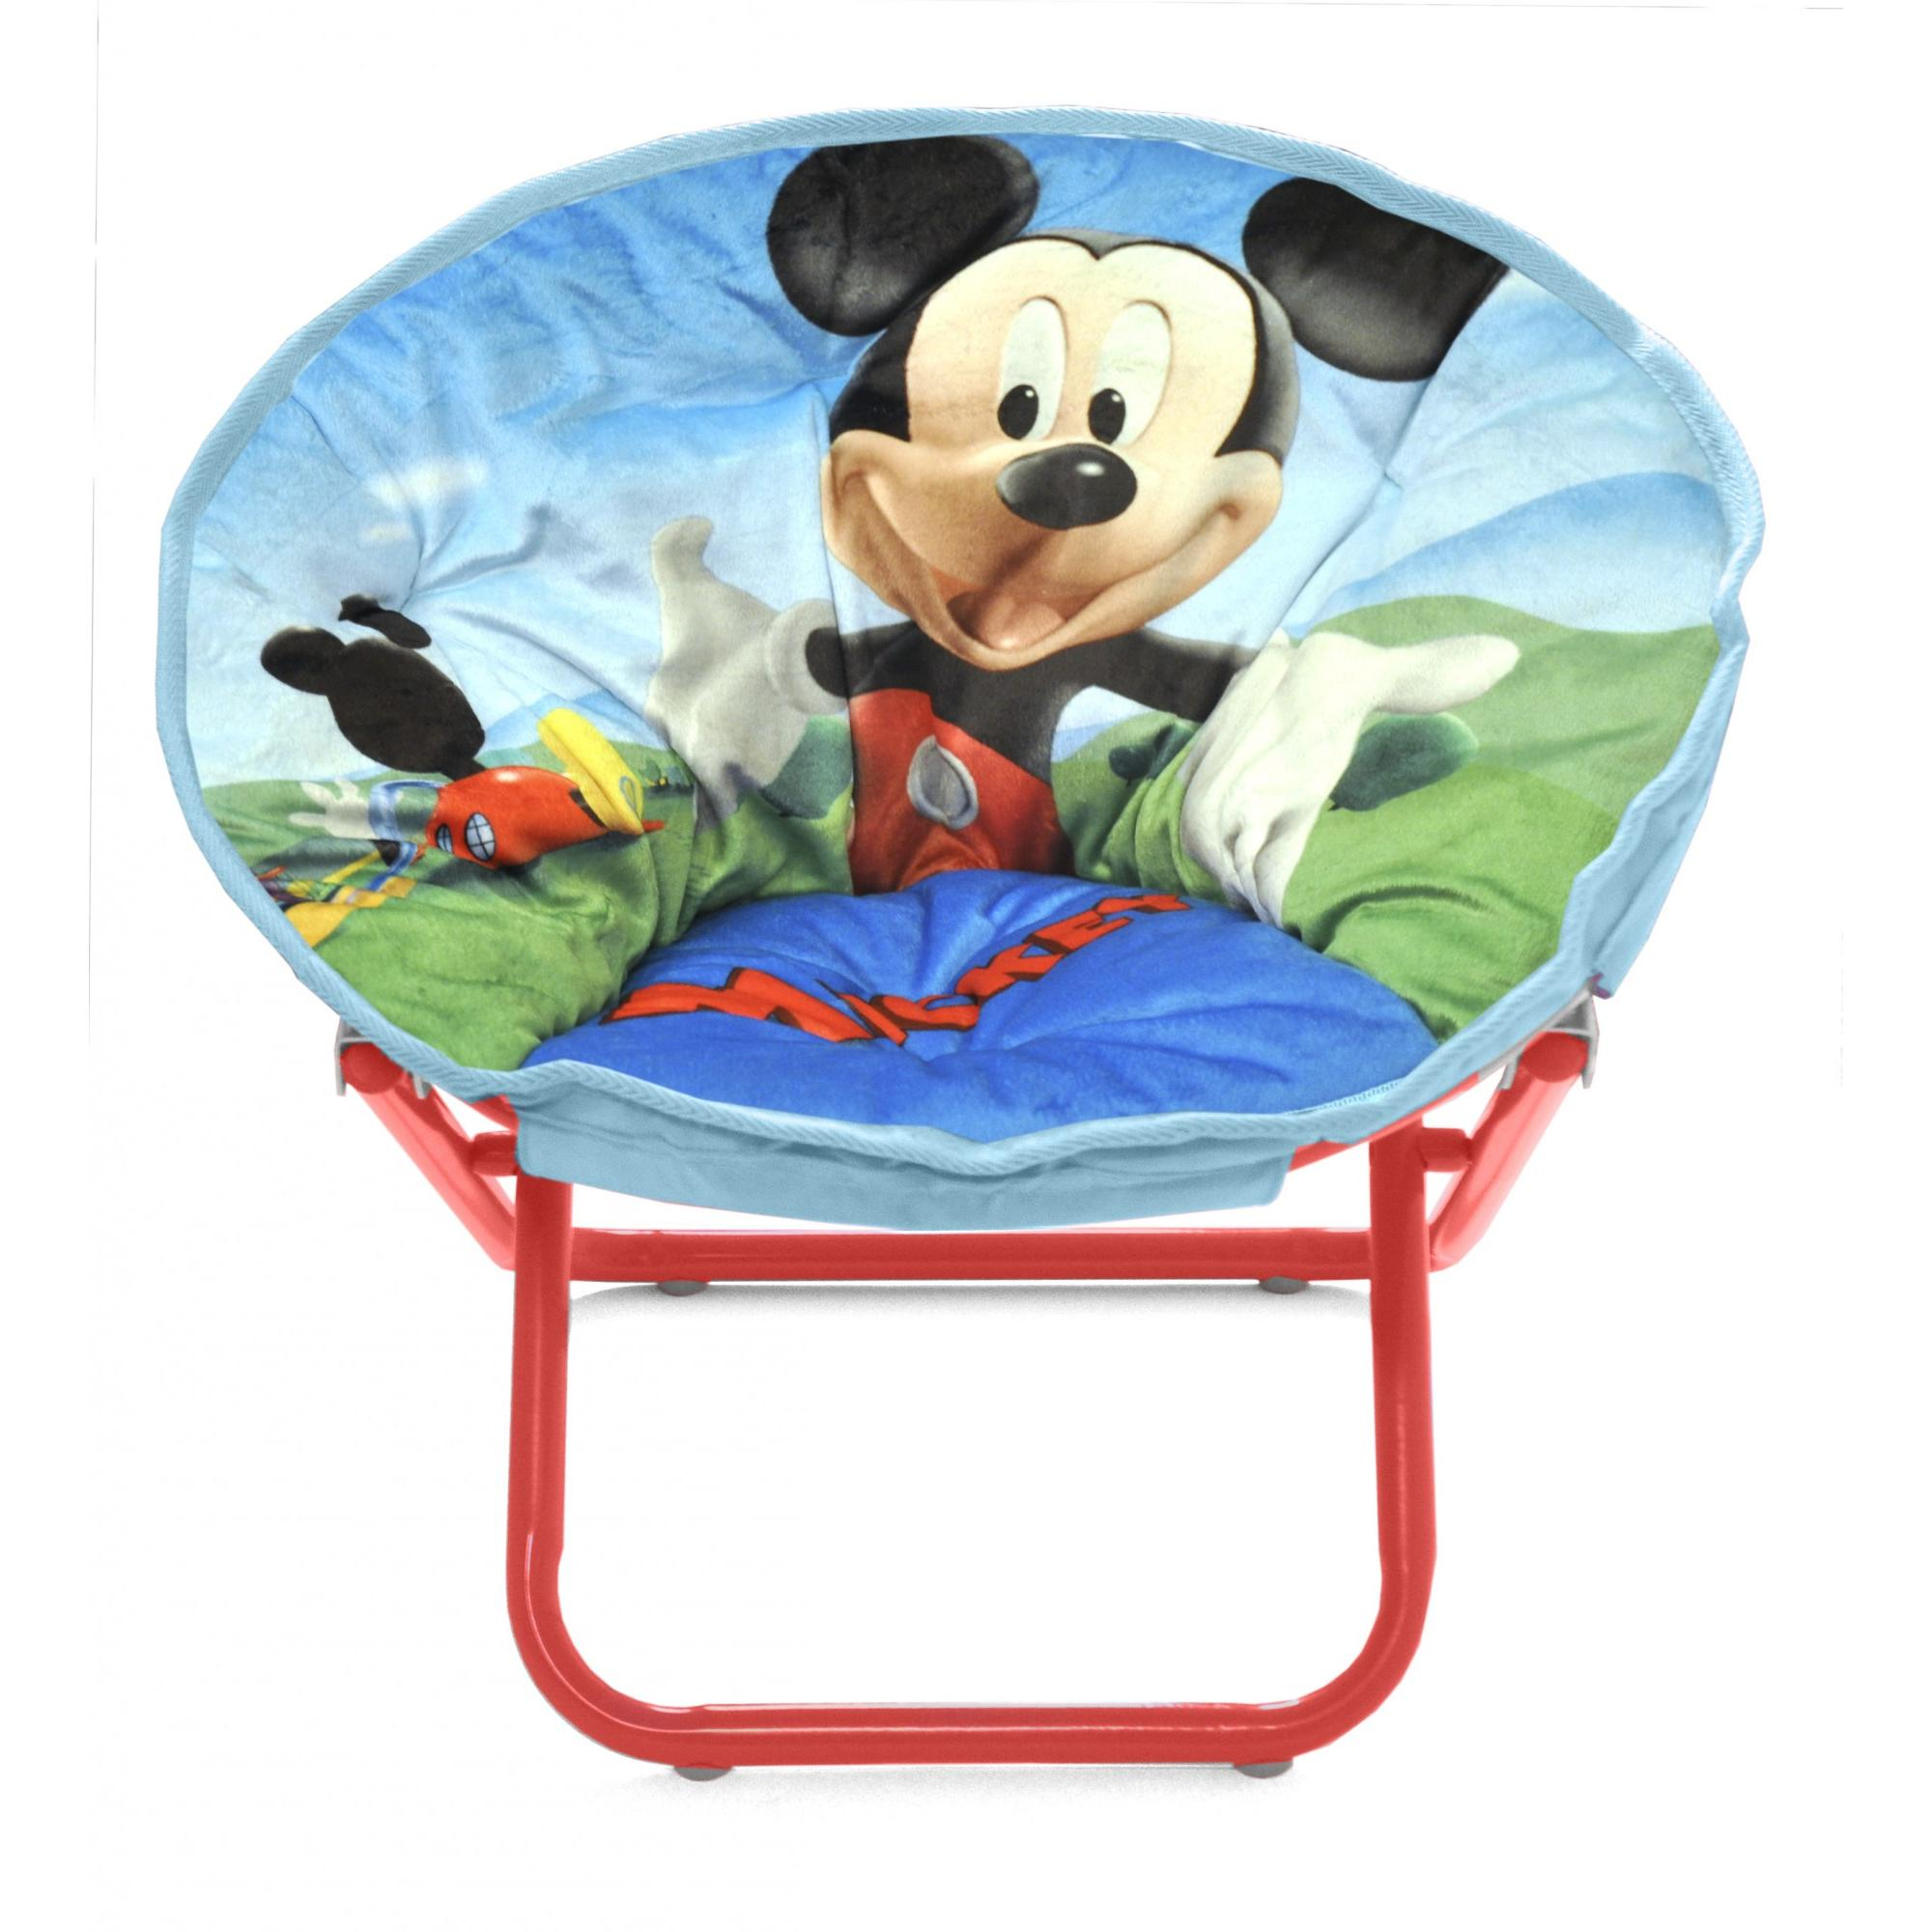 Mickey Mouse Mini Collapsible Saucer Chair Walmart